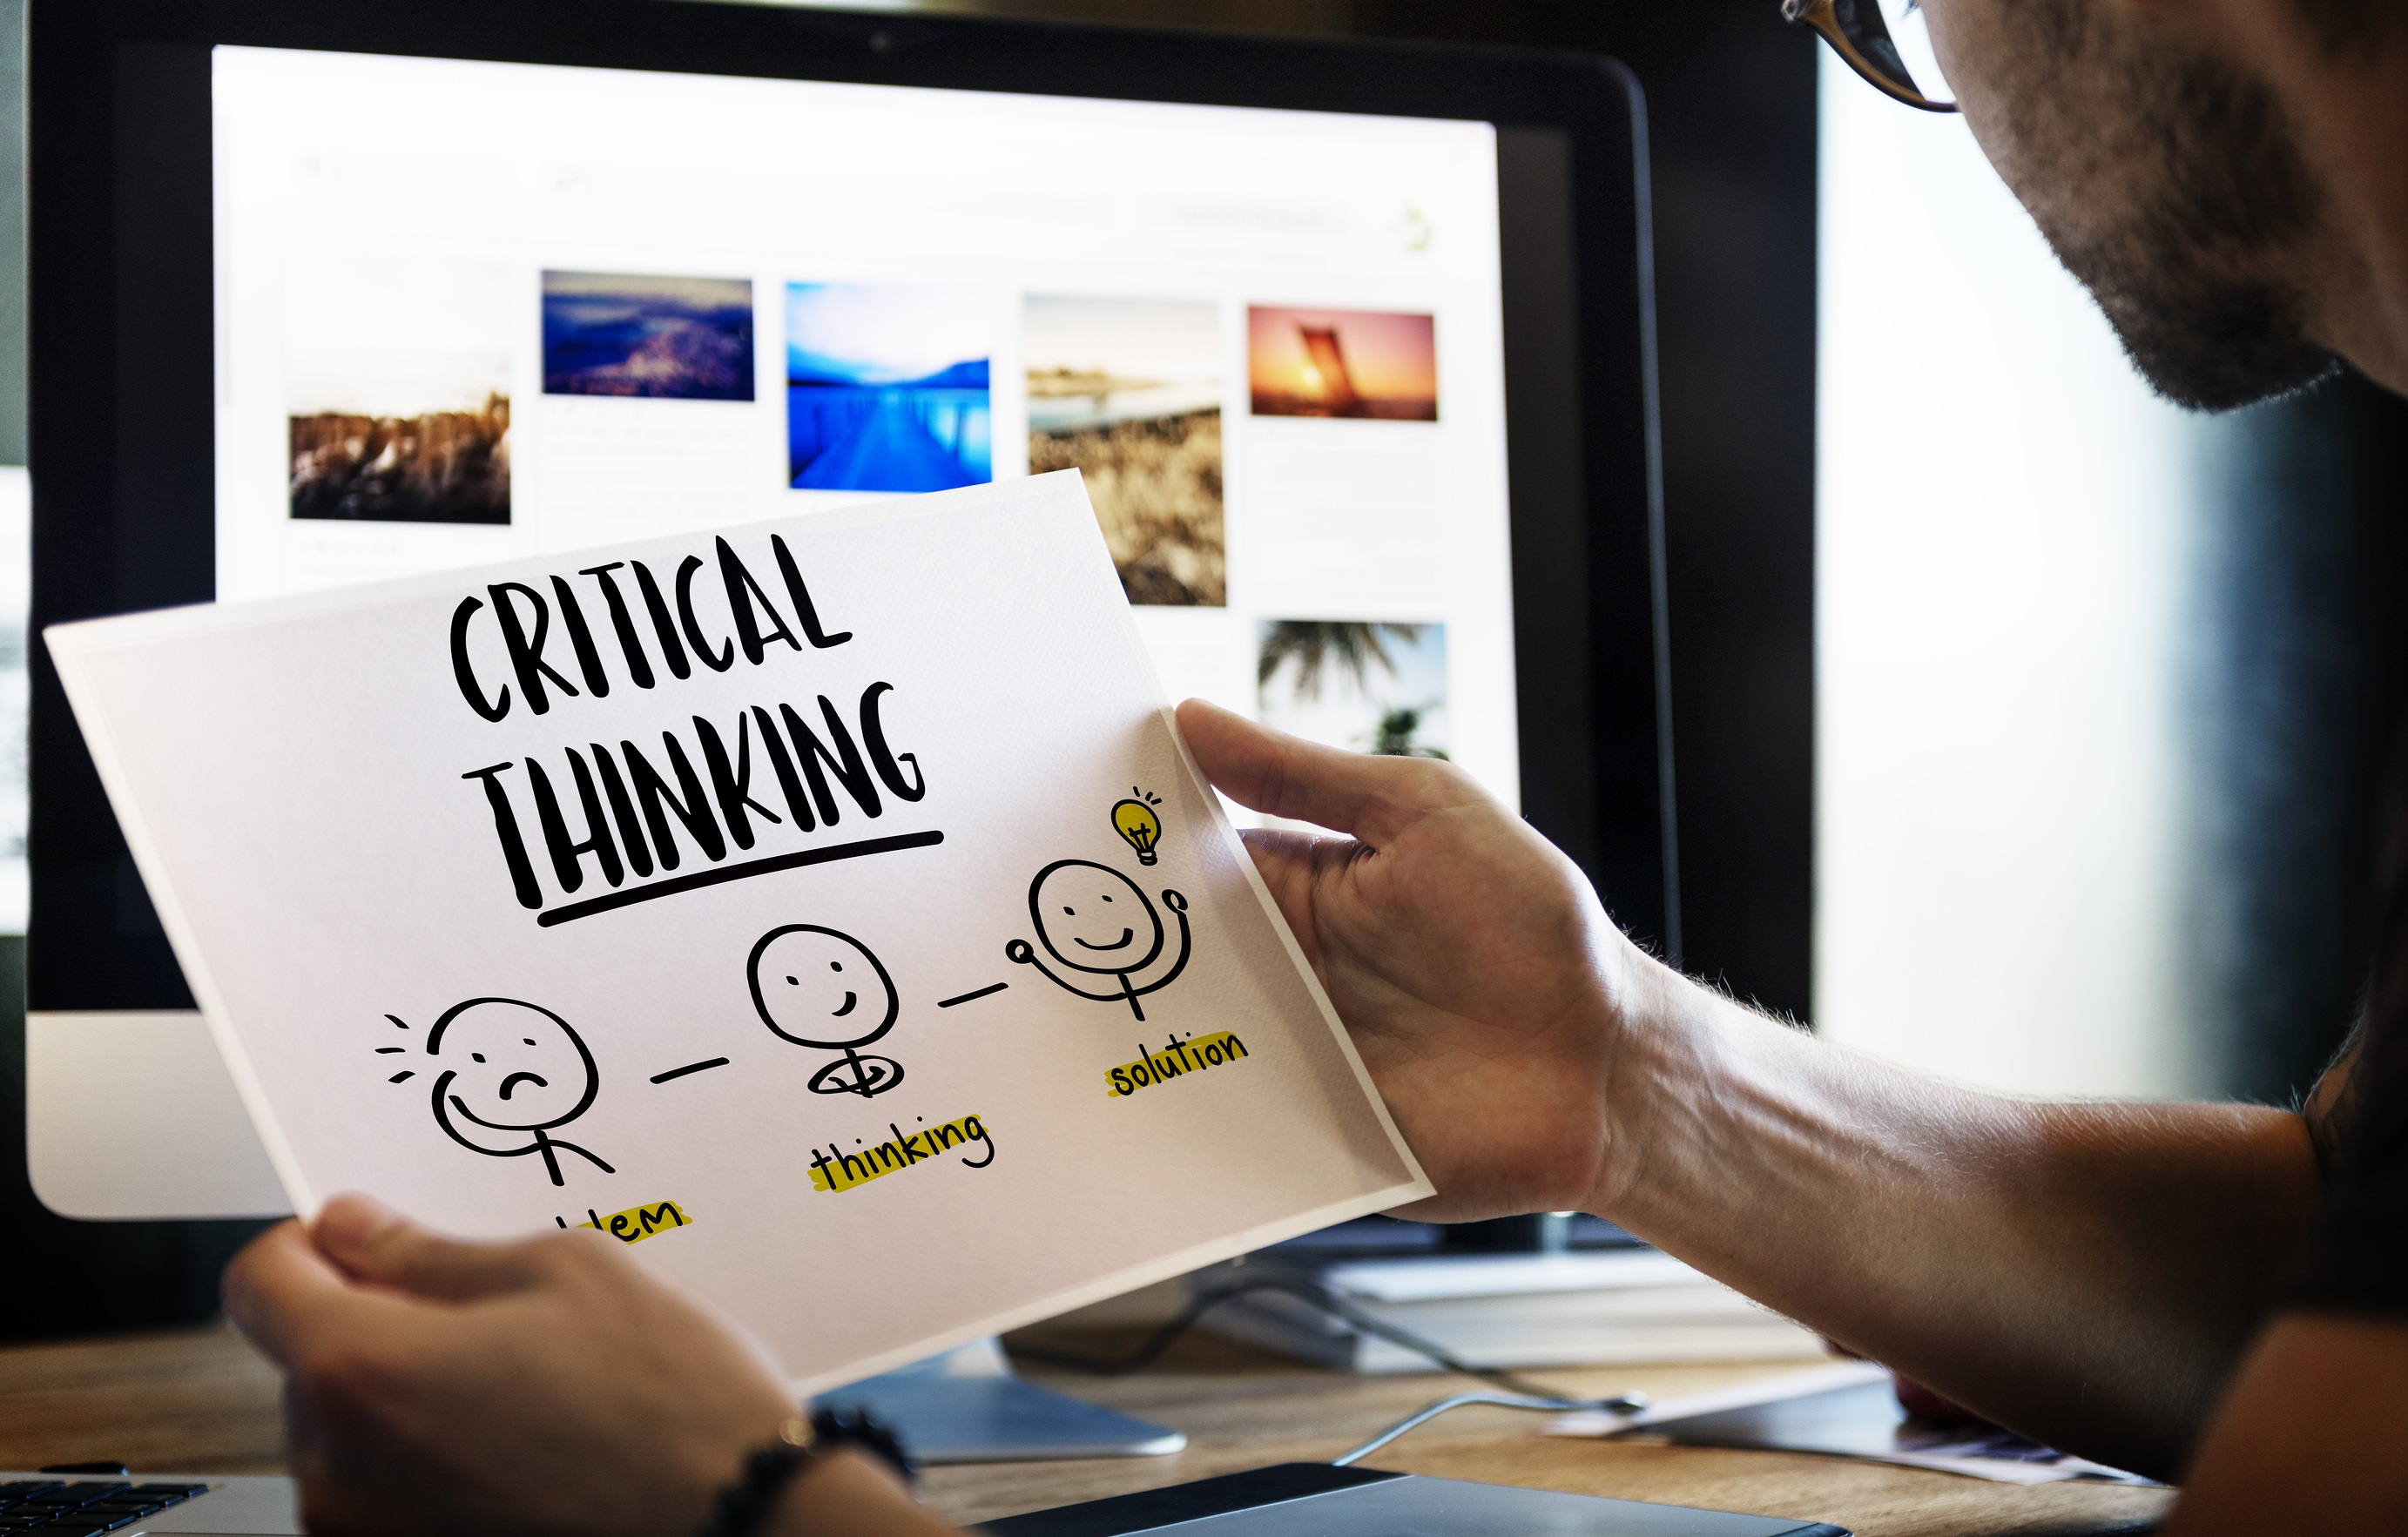 Critical Thinking - Potential - Business Development